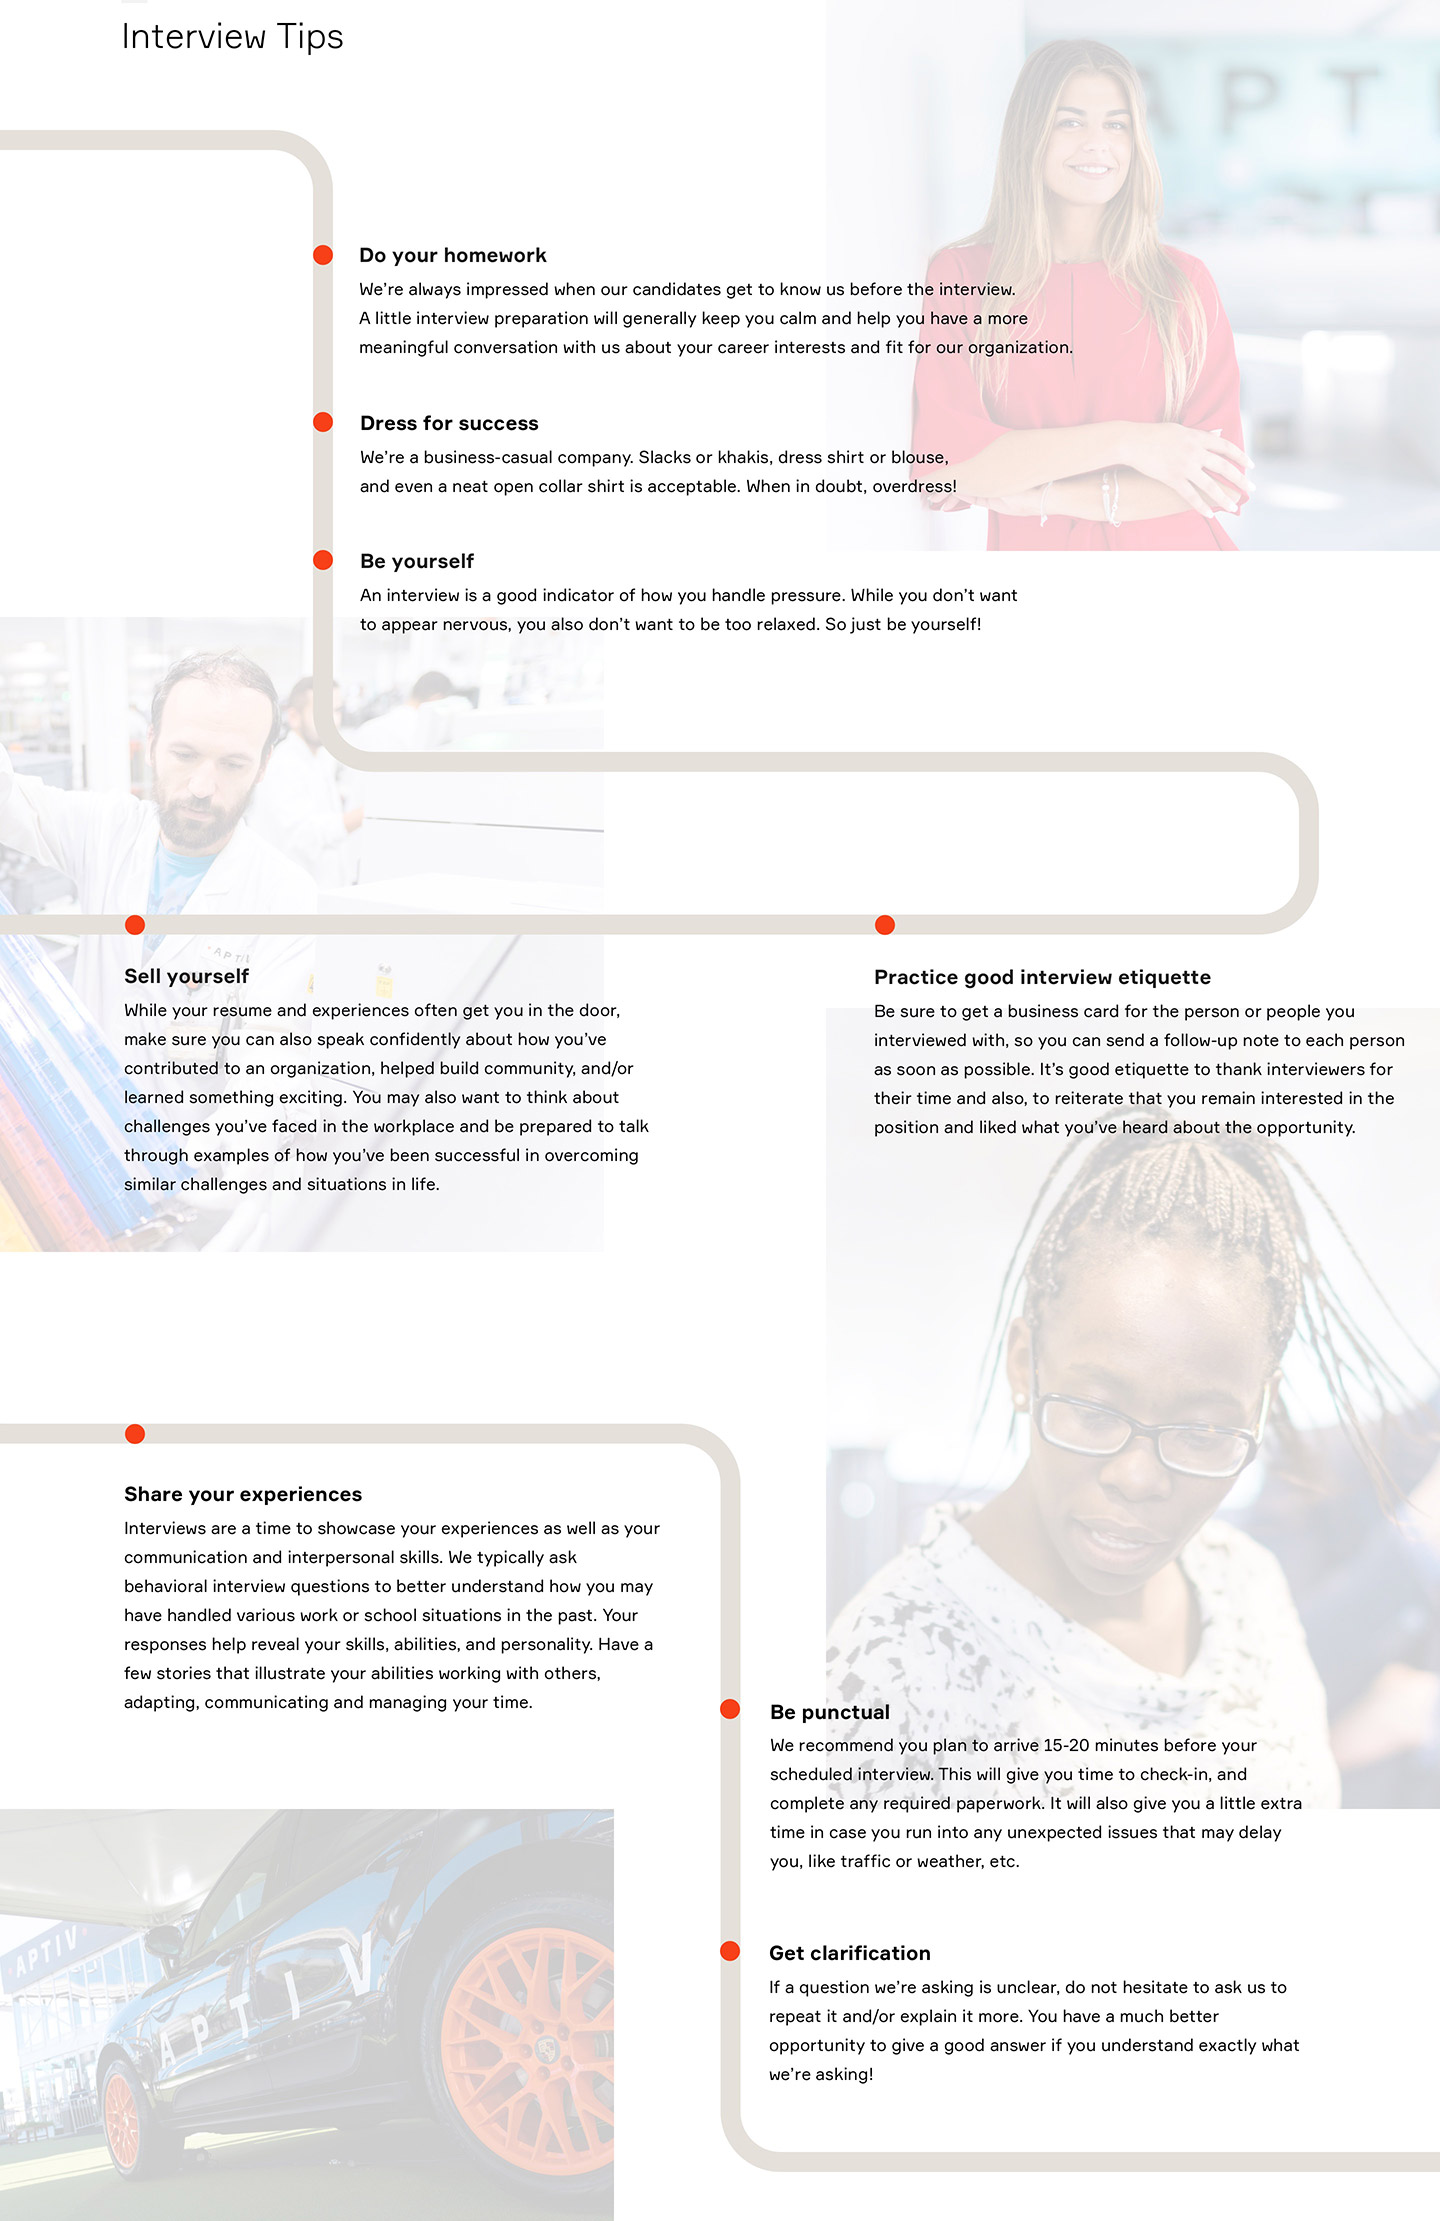 aptiv-students-and-graduates-tips-infographic